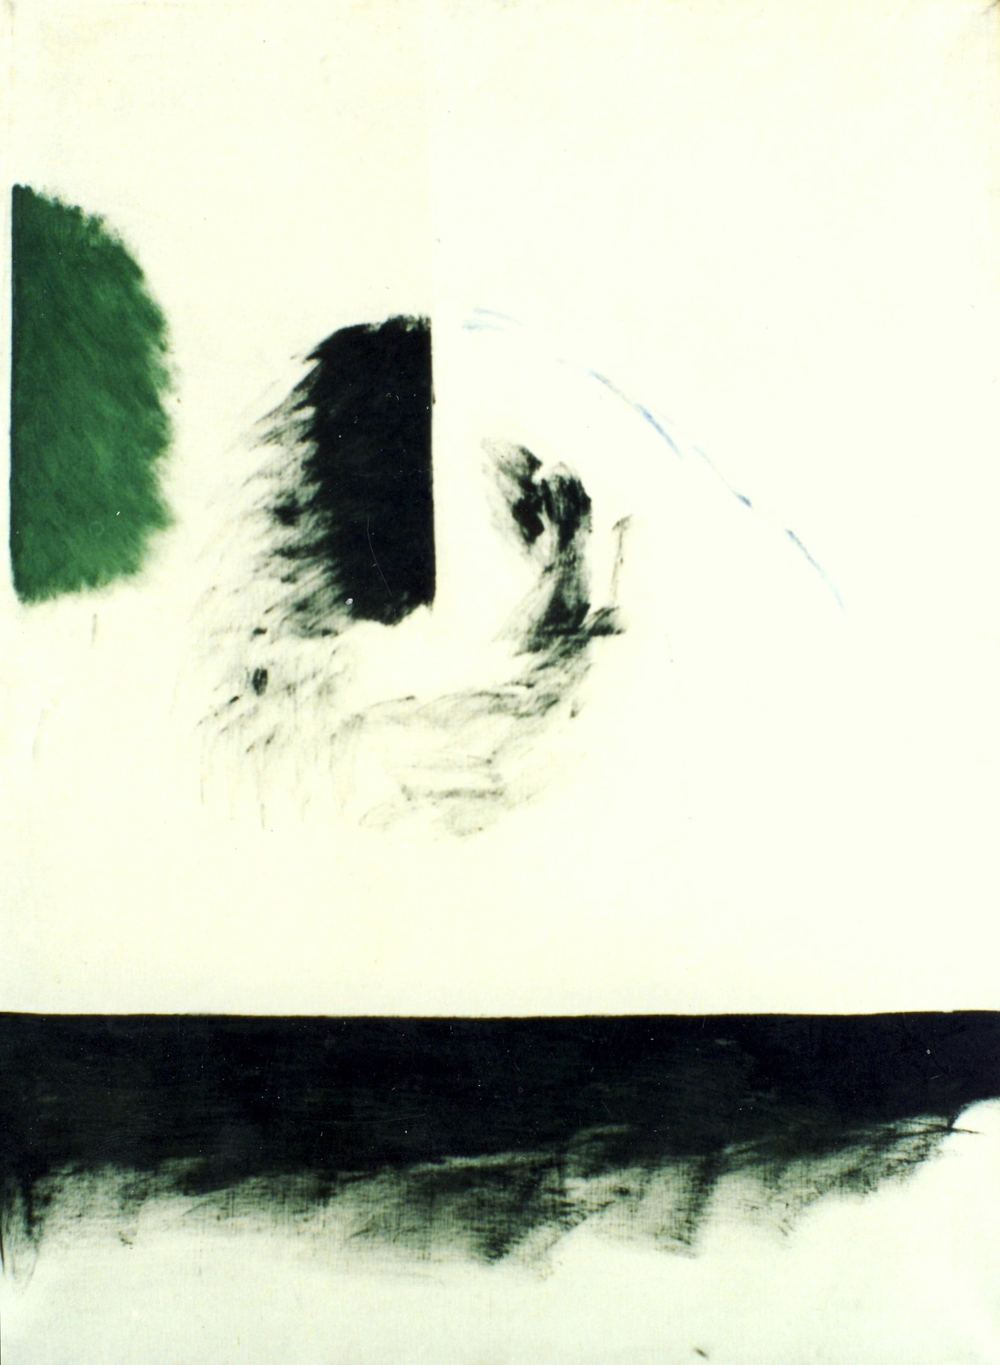 "senza titolo, dalla serie ""Ipotesi ultime"", 1963, olio su tela, cm 130 x 97   untitled, from the series ""Ipotesi ultime"", 1963, oil on canvas, cm 130 x 97"